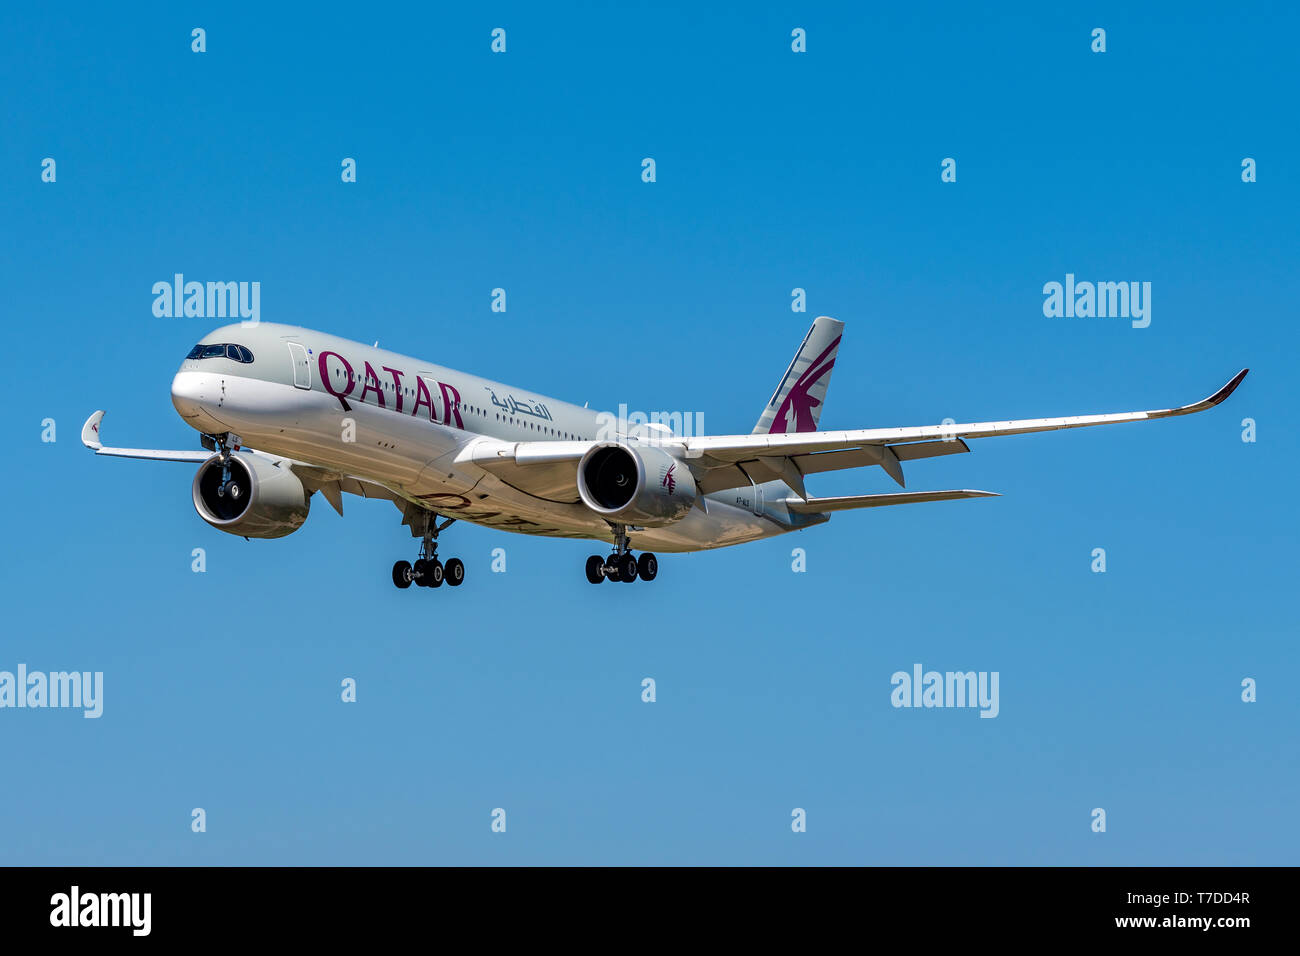 QATAR Airbus A350-900 on approach at Barcelona El Prat airport, Barcelona, Catalonia, Spain - Stock Image